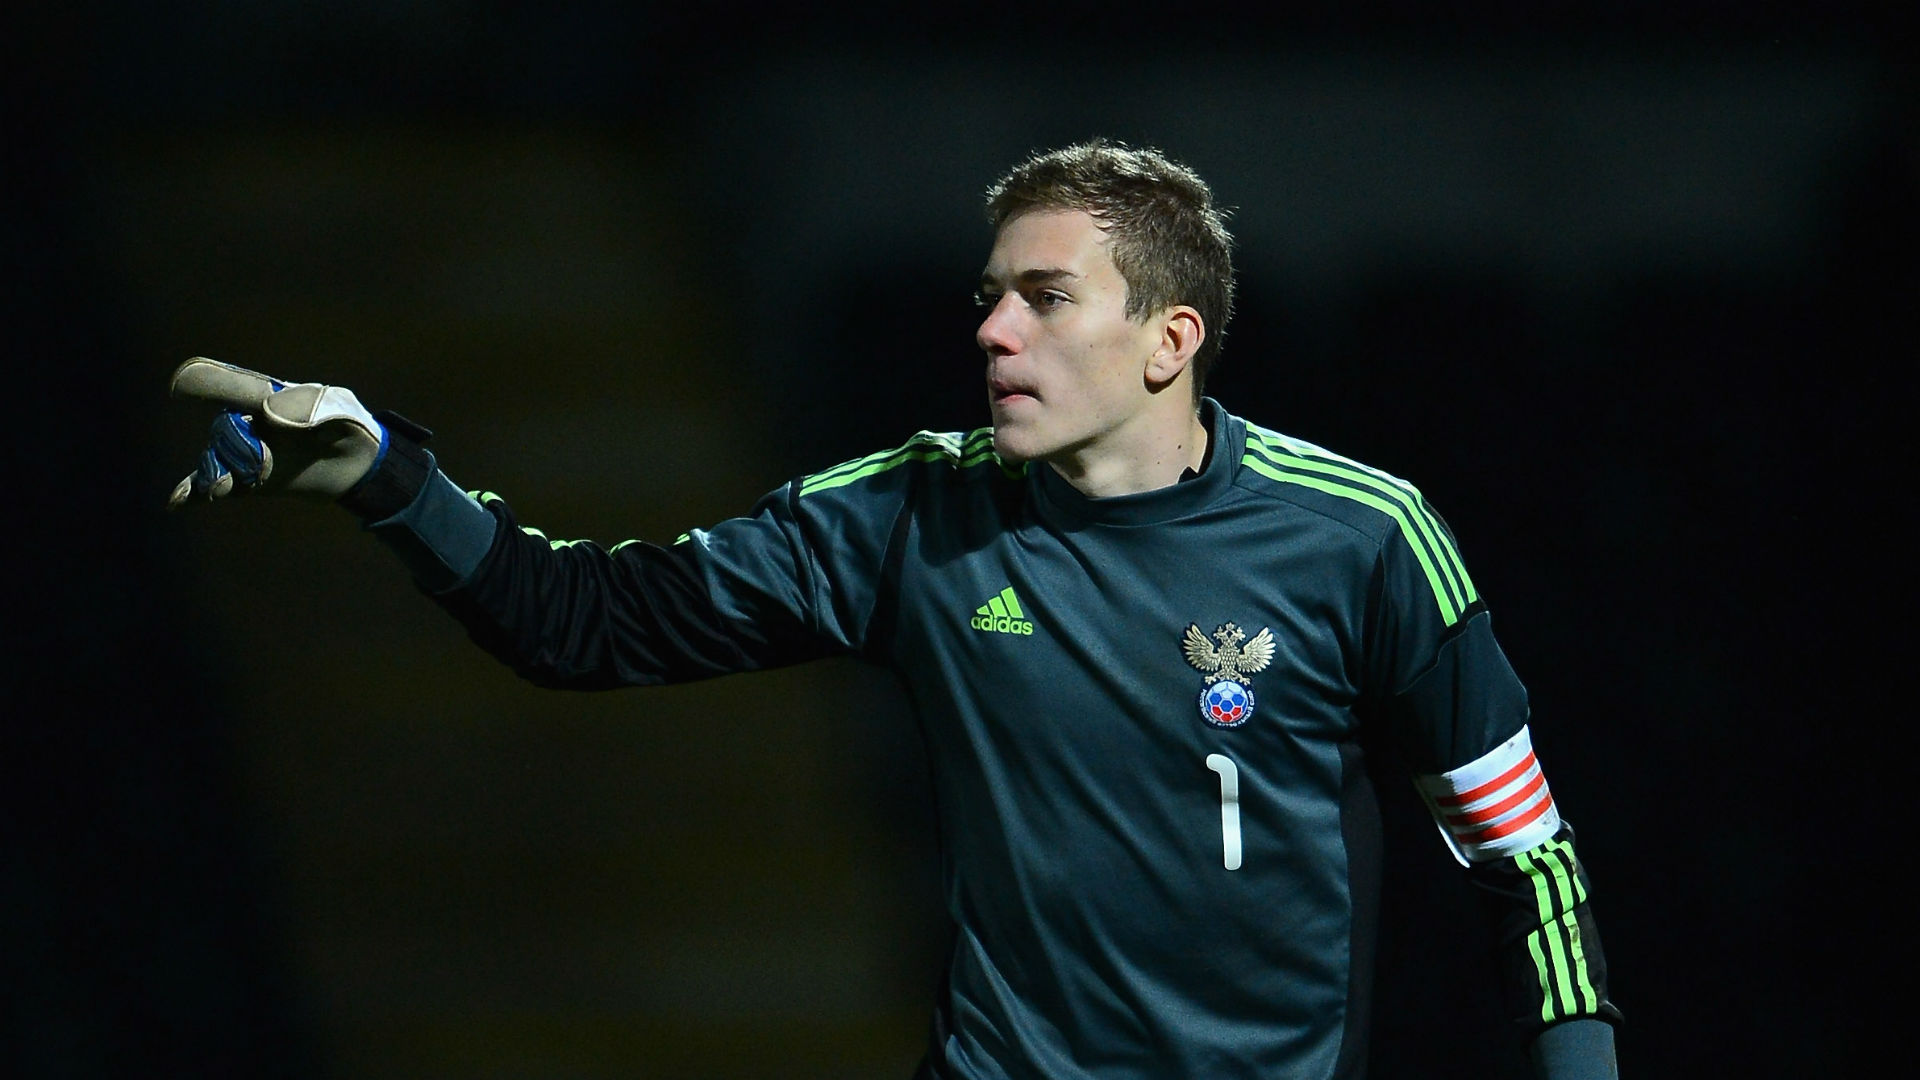 Anton Mitryushkin - life and career of a young but already well-known Russian goalkeeper